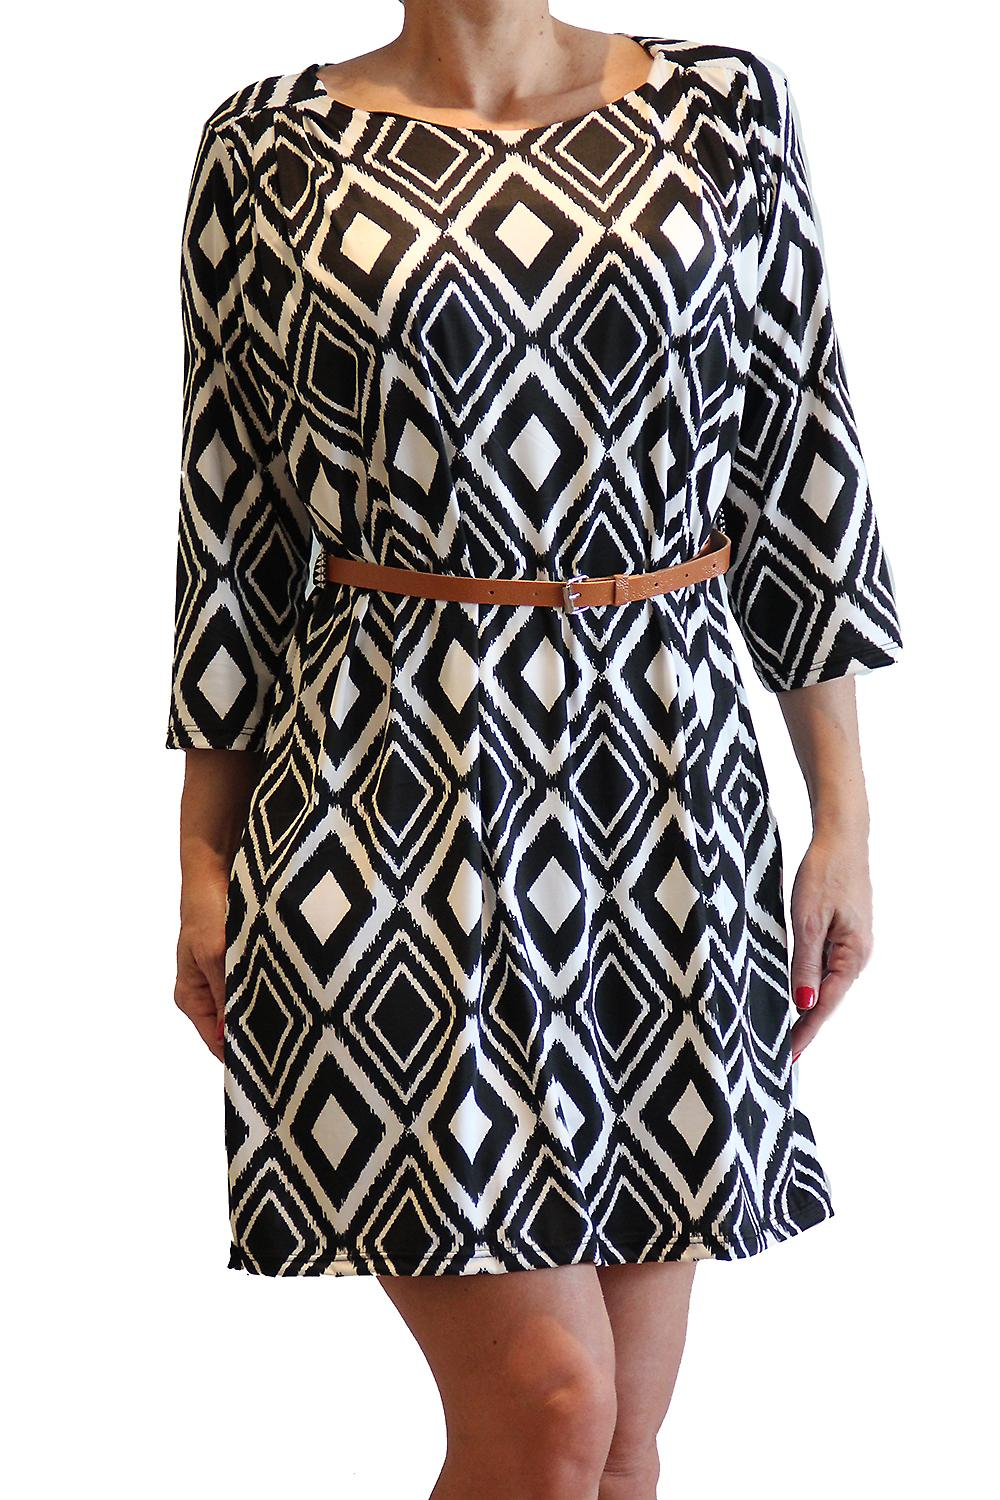 Waooh - Fashion - Dress right geometric print and belt